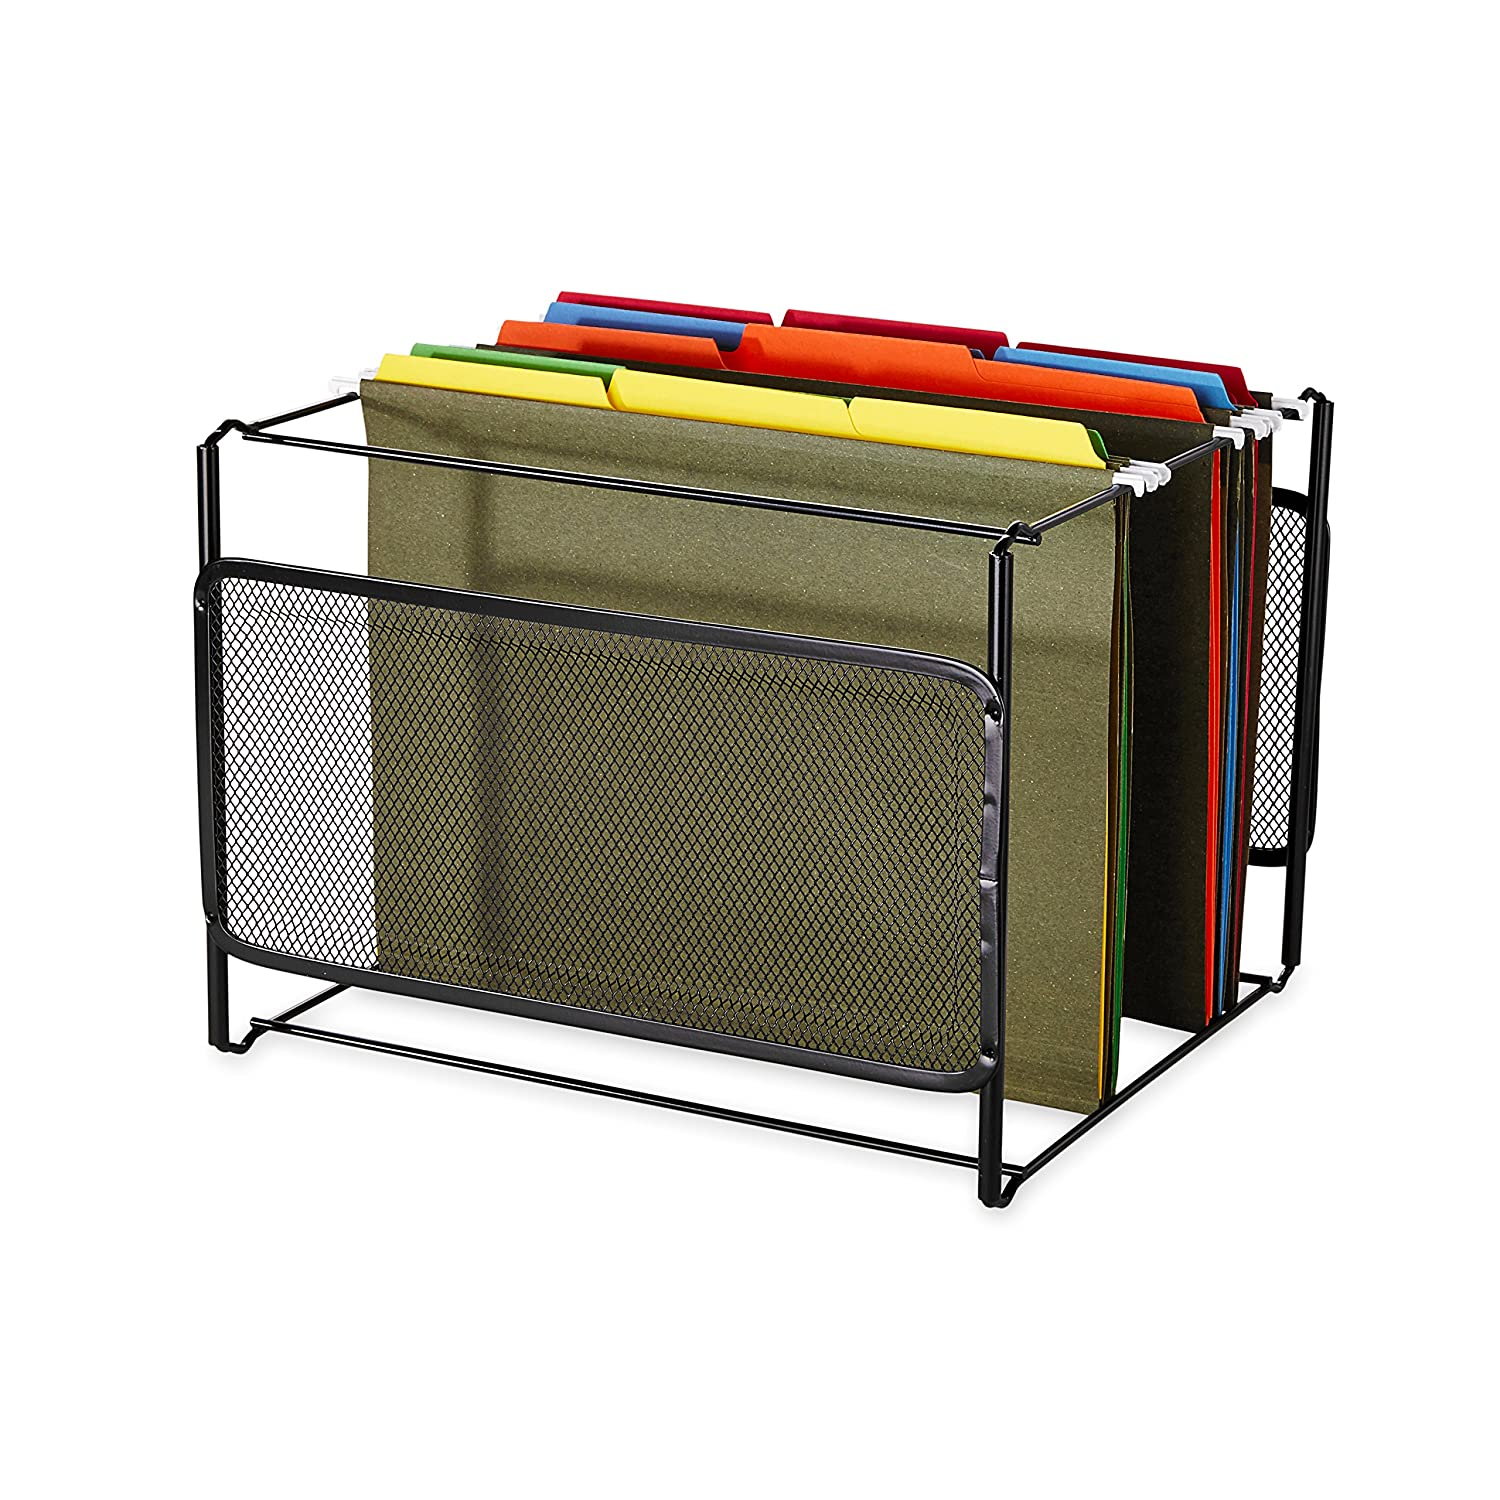 Amazon.com : Rolodex - Eldon Mesh Collection Side-Load Double Tray ...